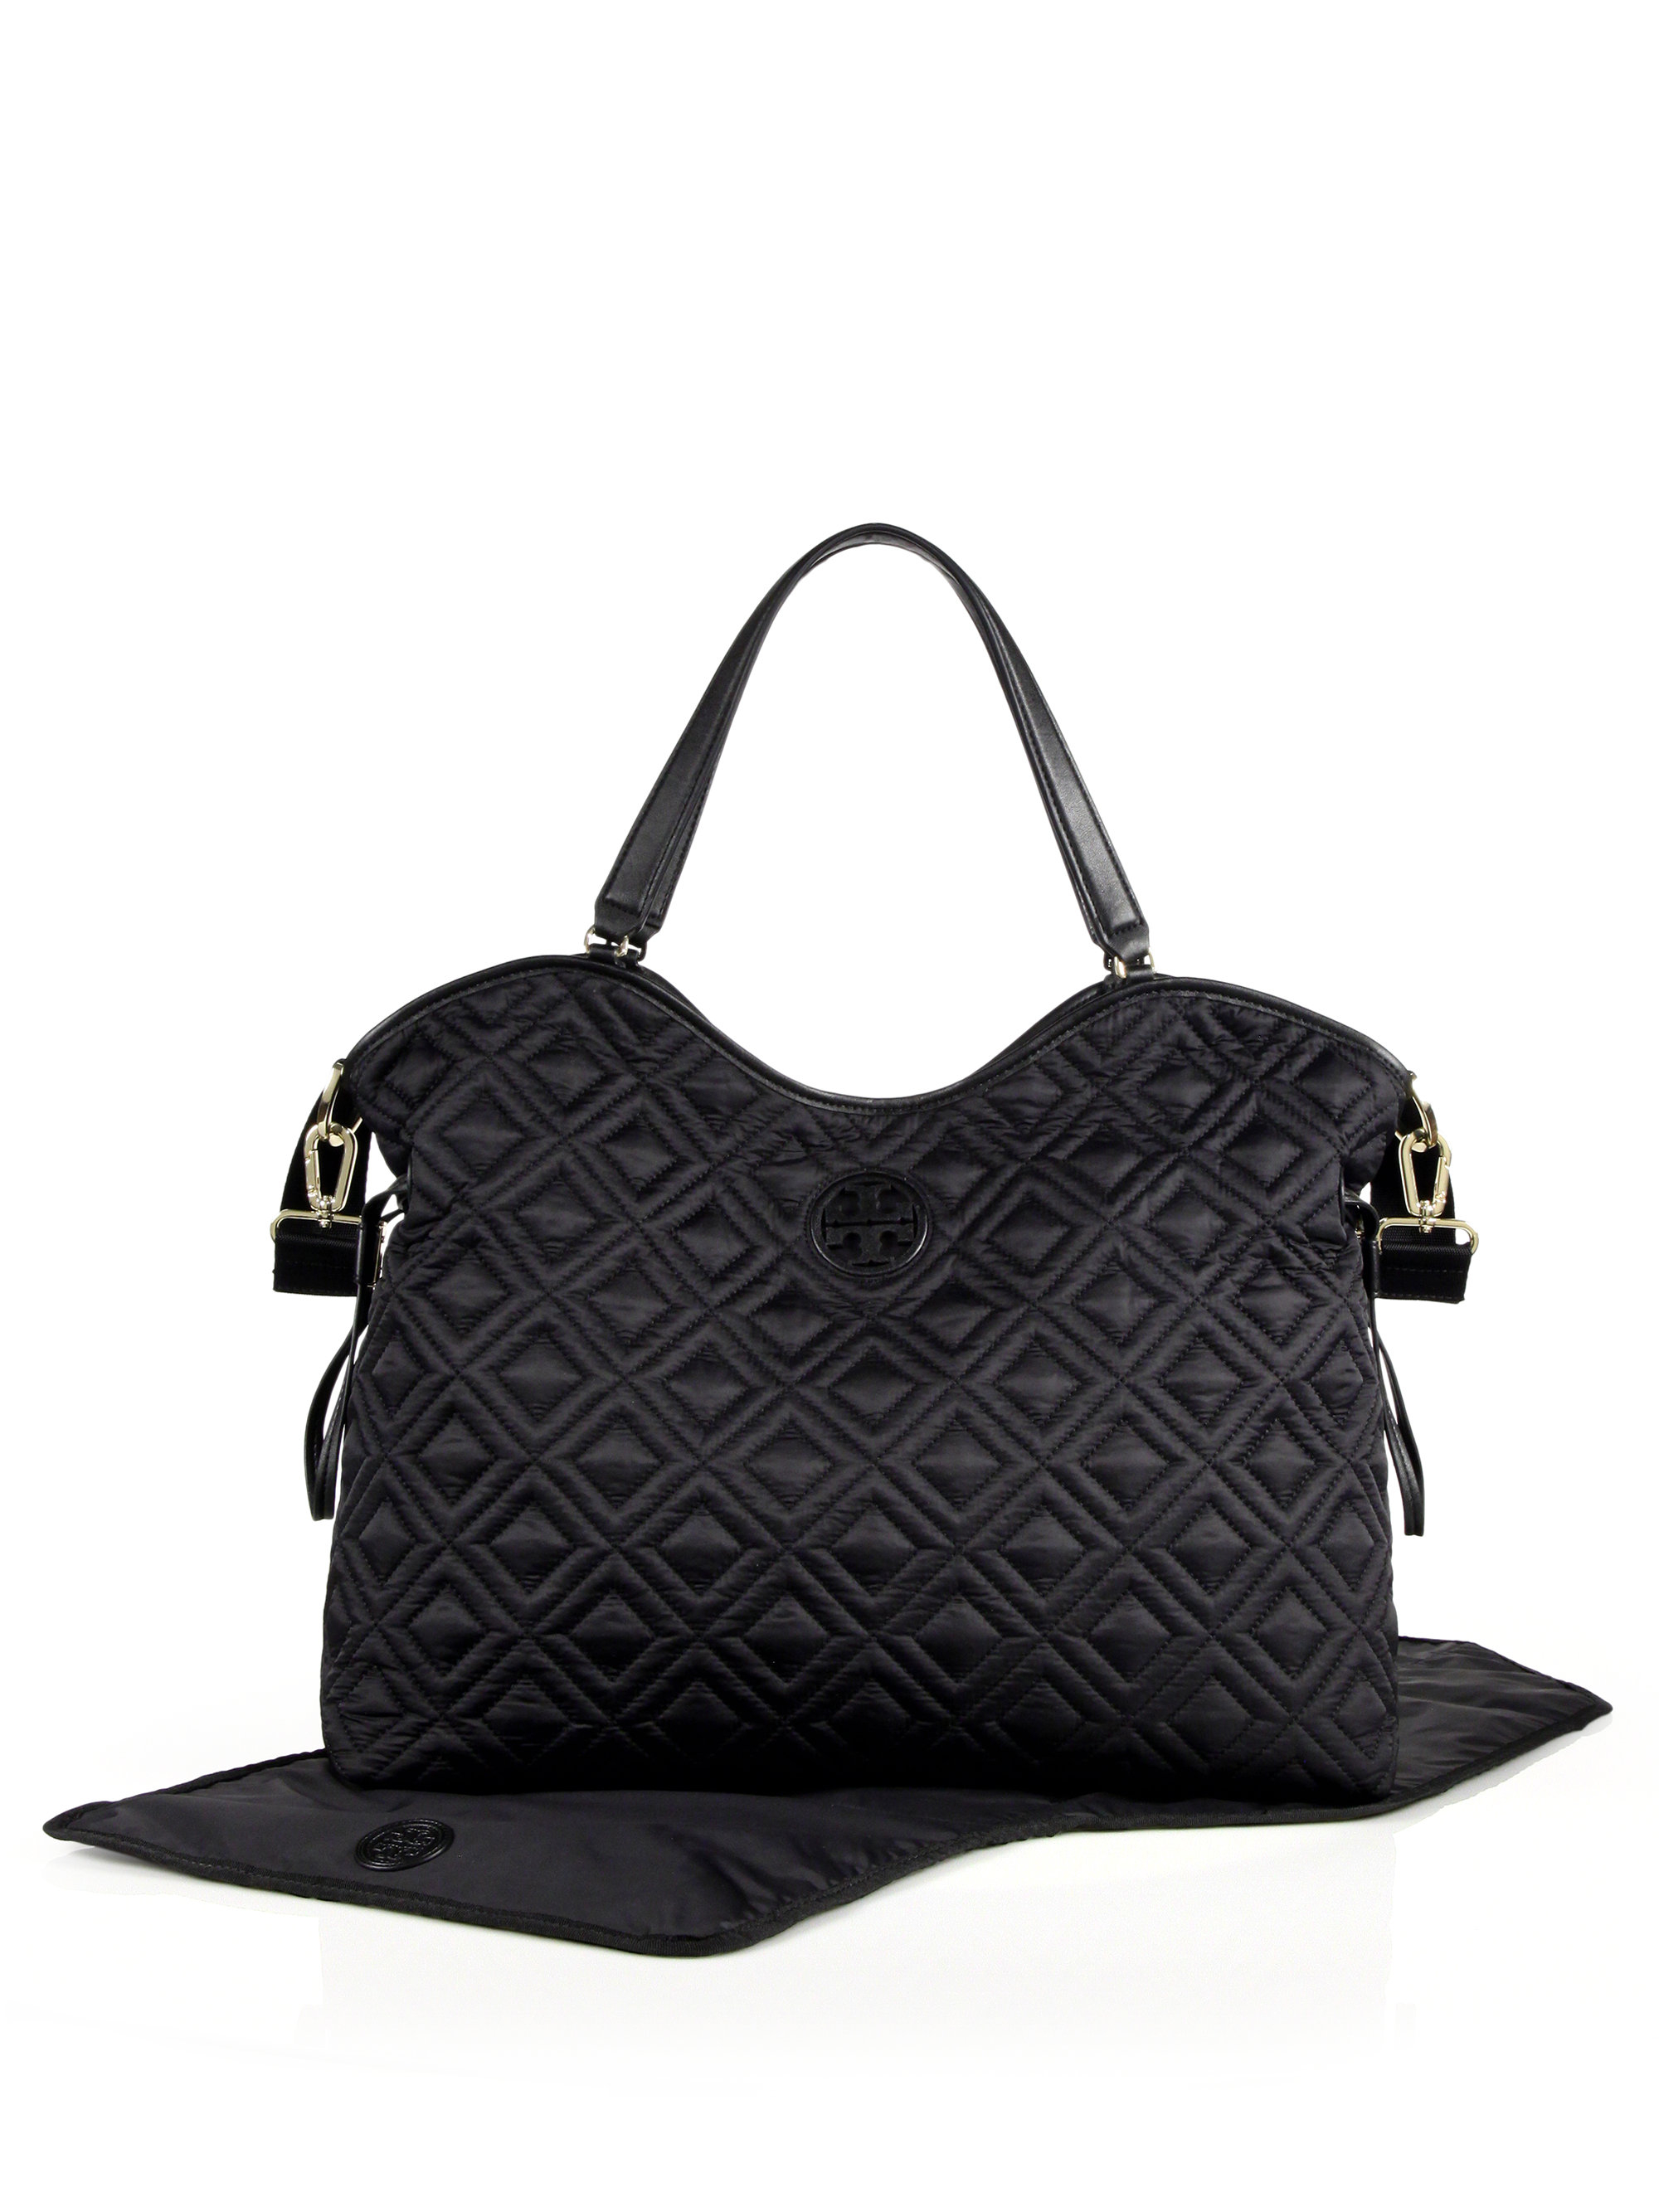 91811a87042 Lyst - Tory Burch Marion Quilted Nylon Baby Bag in Black